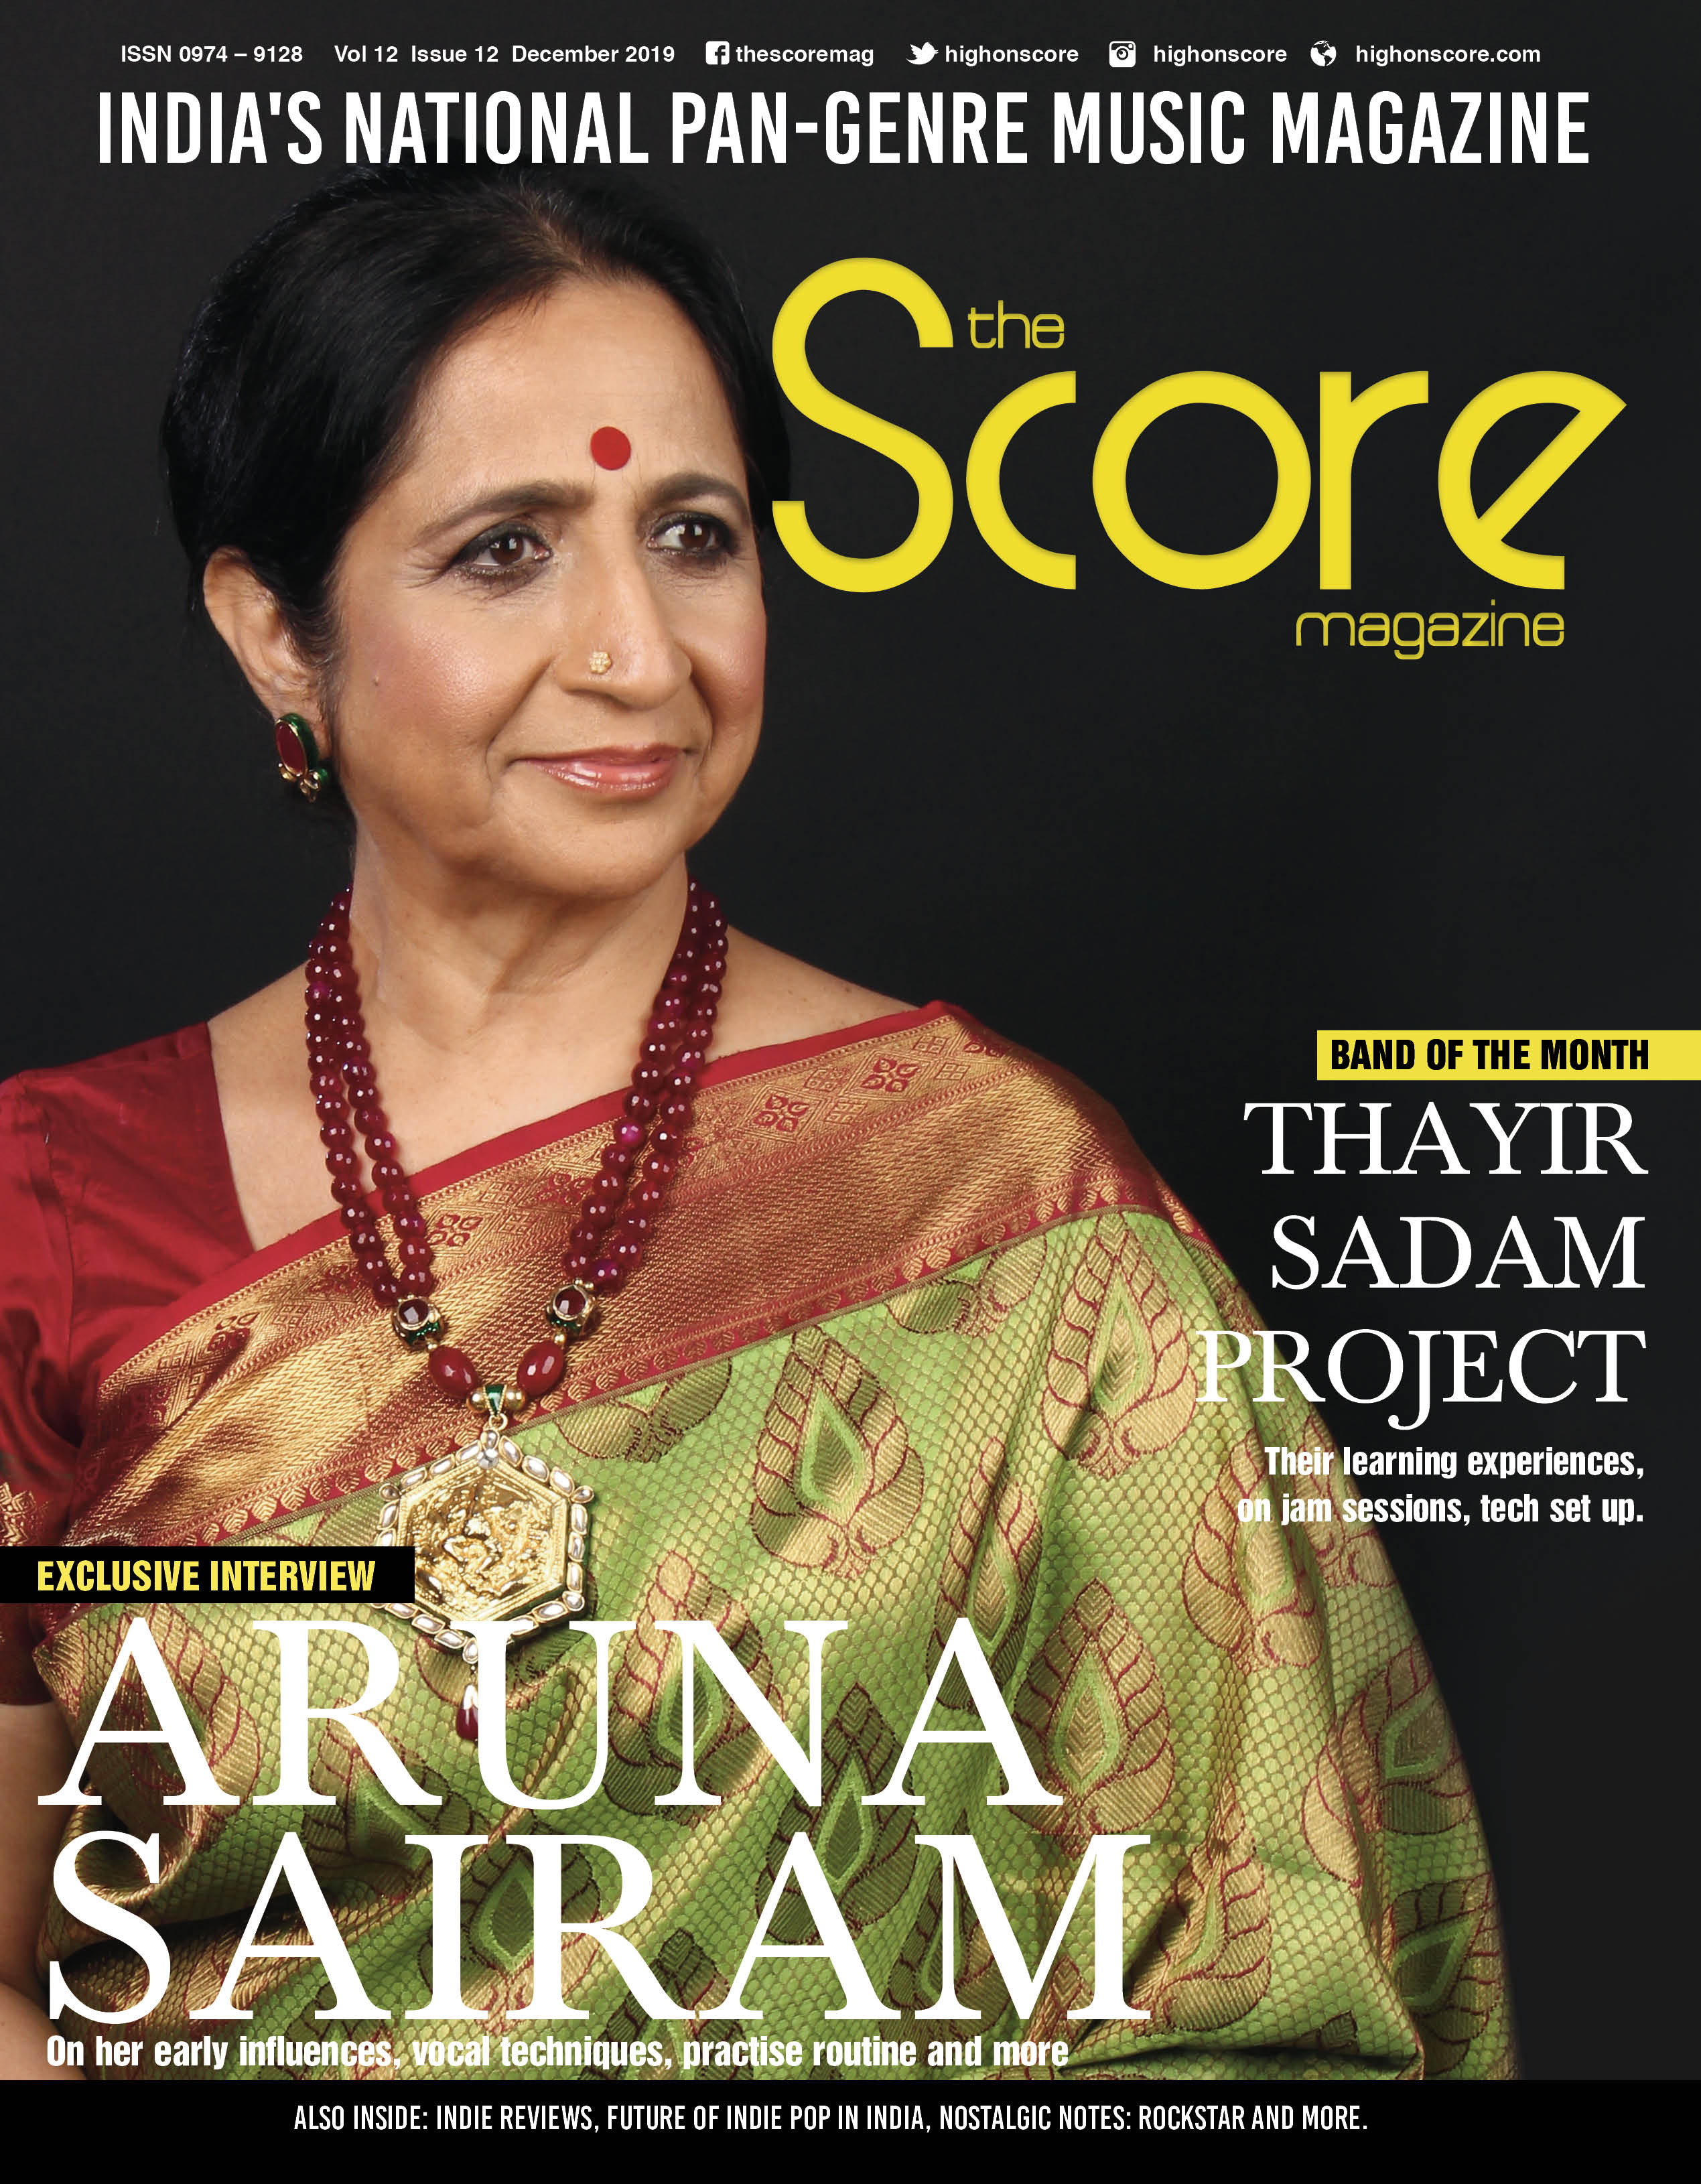 December 2019 issue featuring Aruna Sairam on the cover